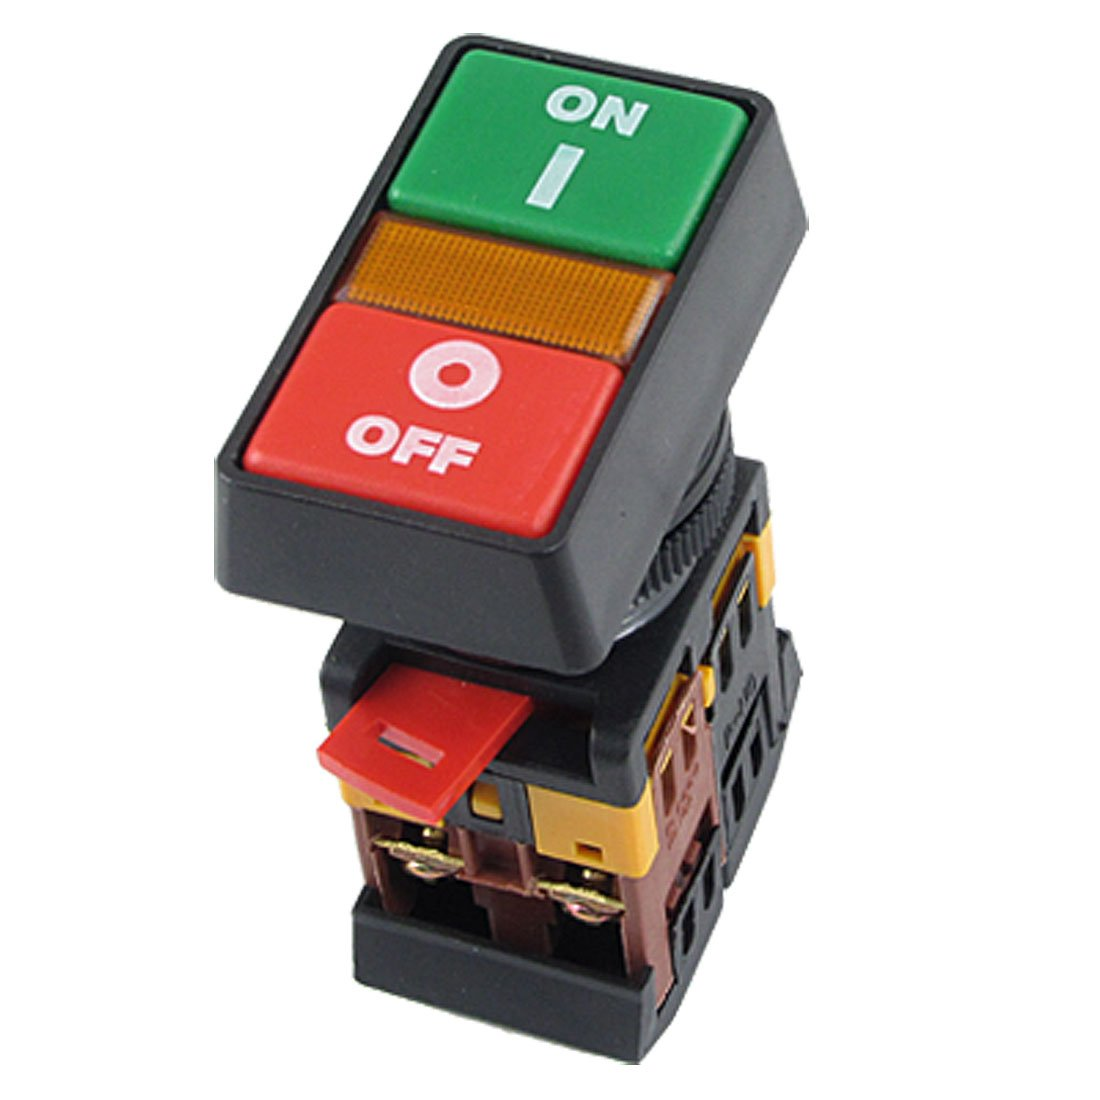 все цены на Promotion! ON OFF START STOP Push Button w Light Indicator Momentary Switch Red Green Power онлайн